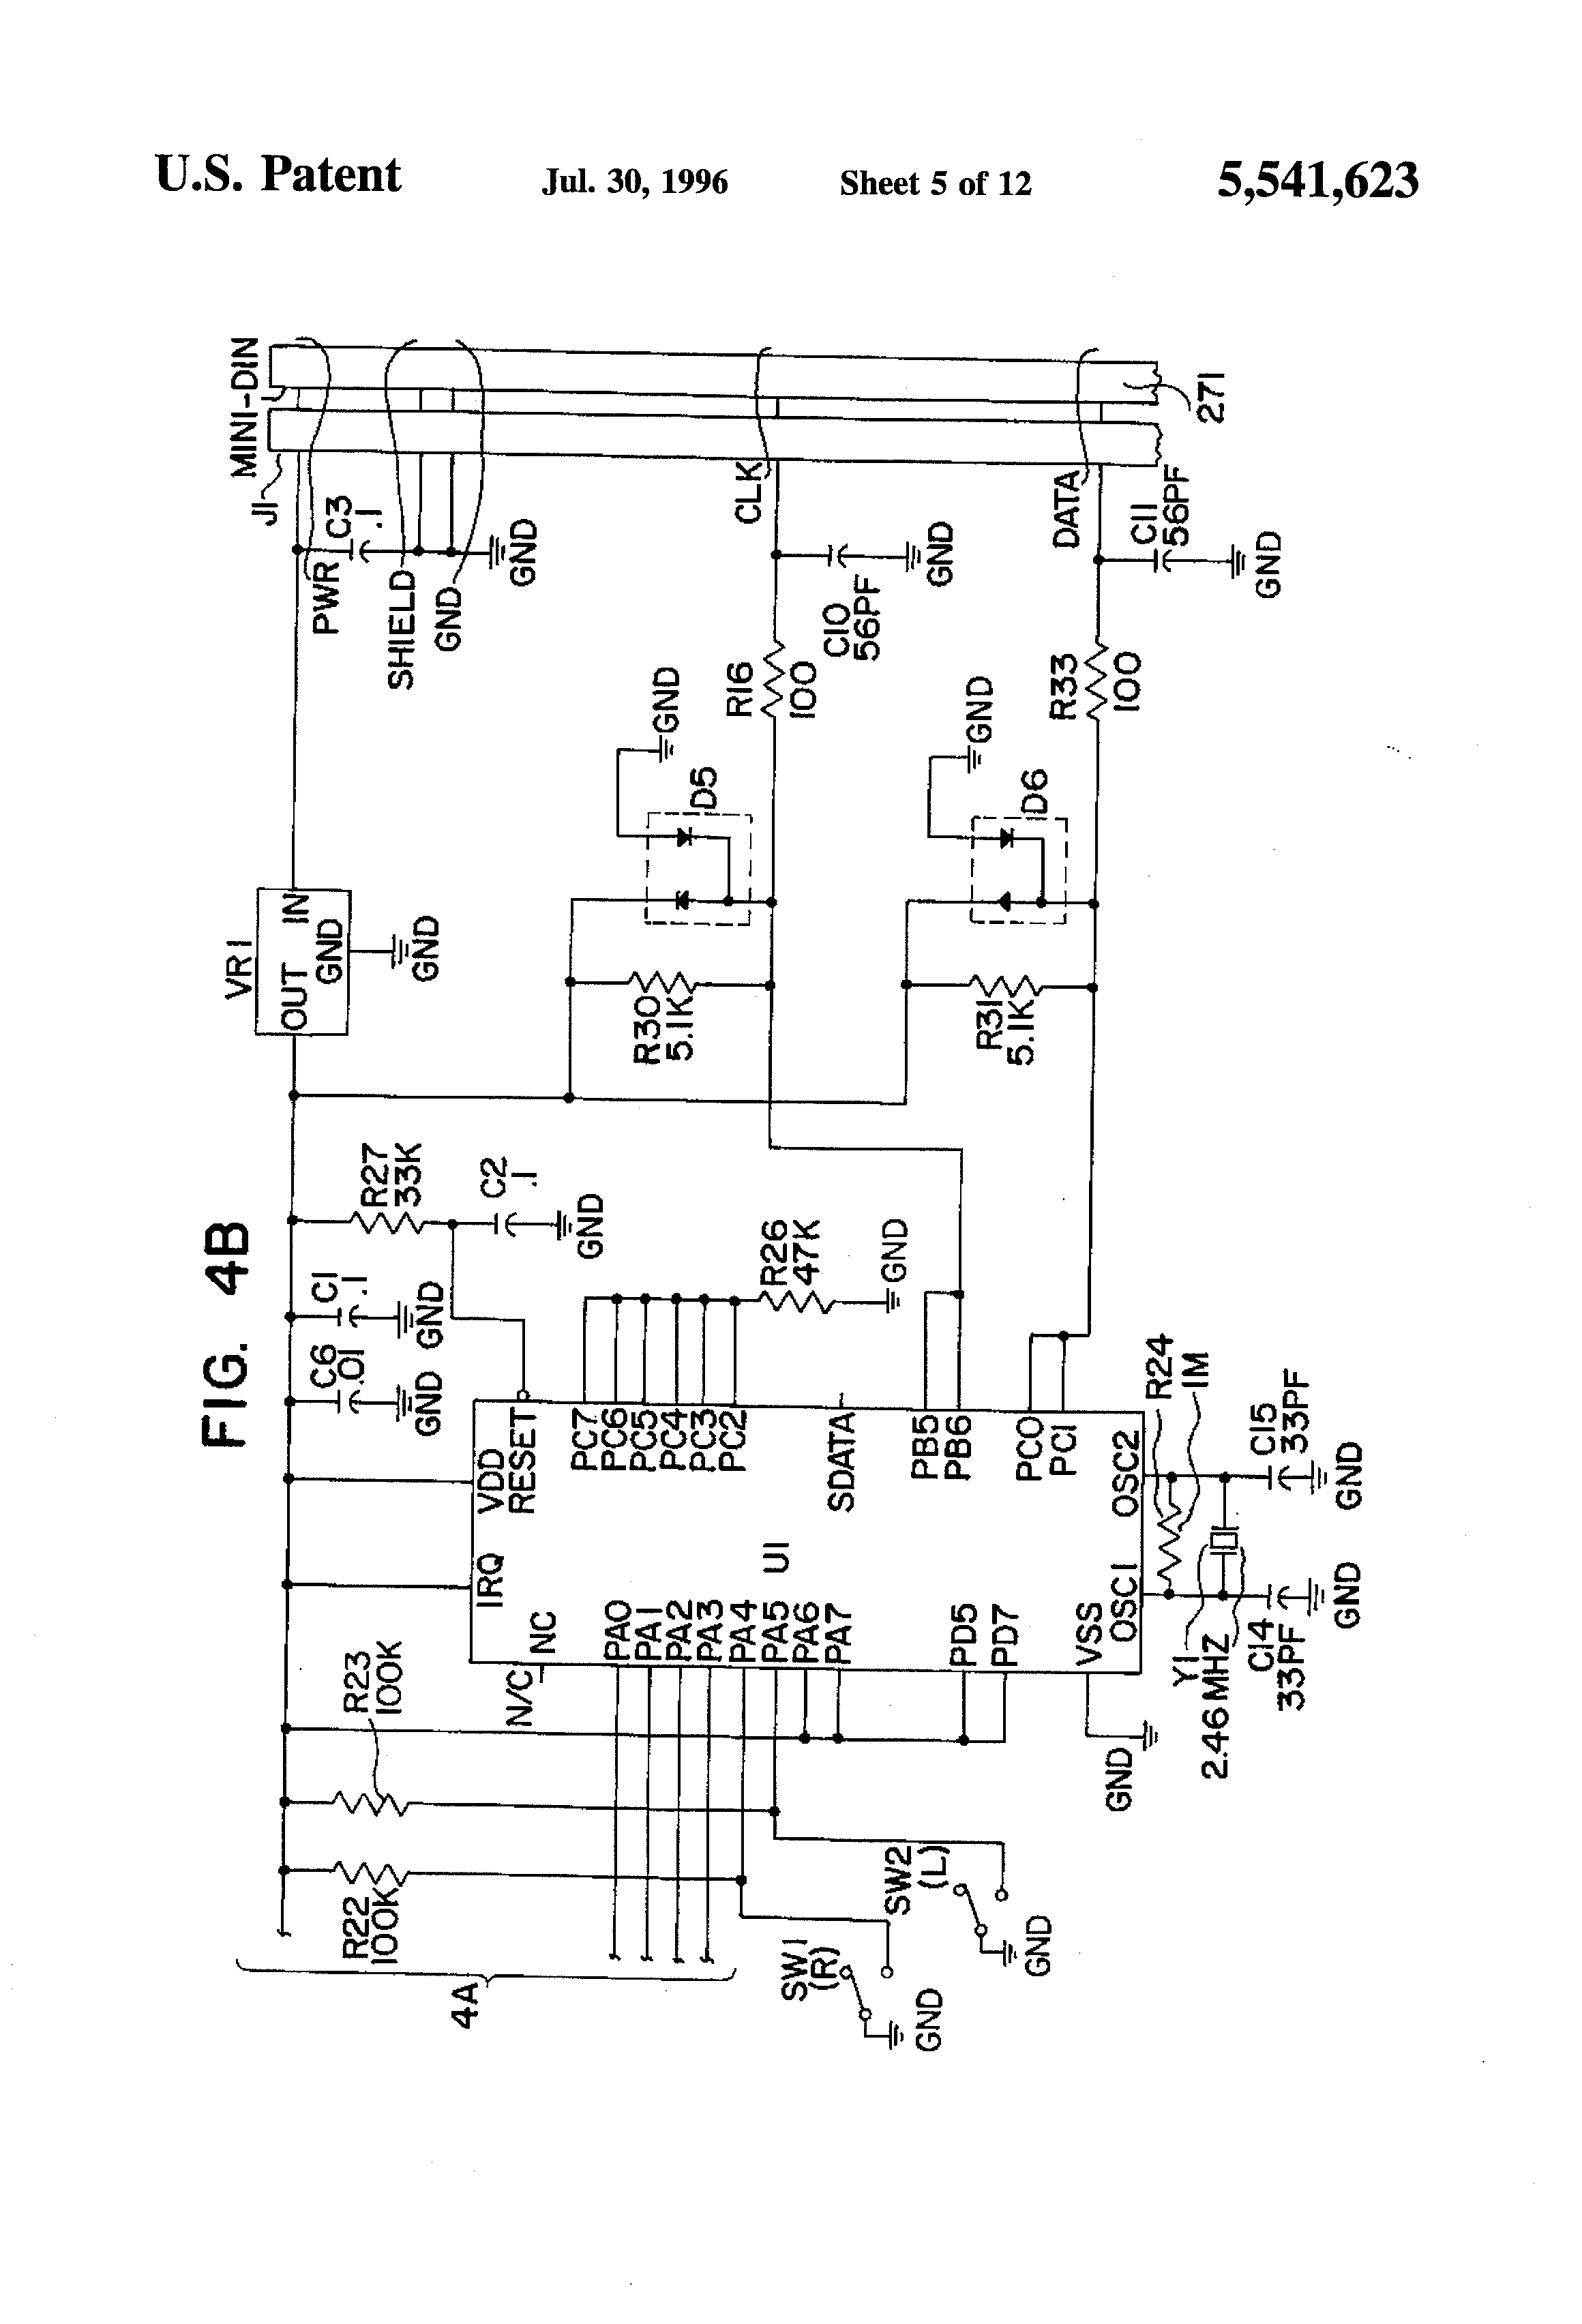 US5541623 5 logitech optical mouse circuit diagram circuit and schematics Gvd Vent Damper 6 at nearapp.co